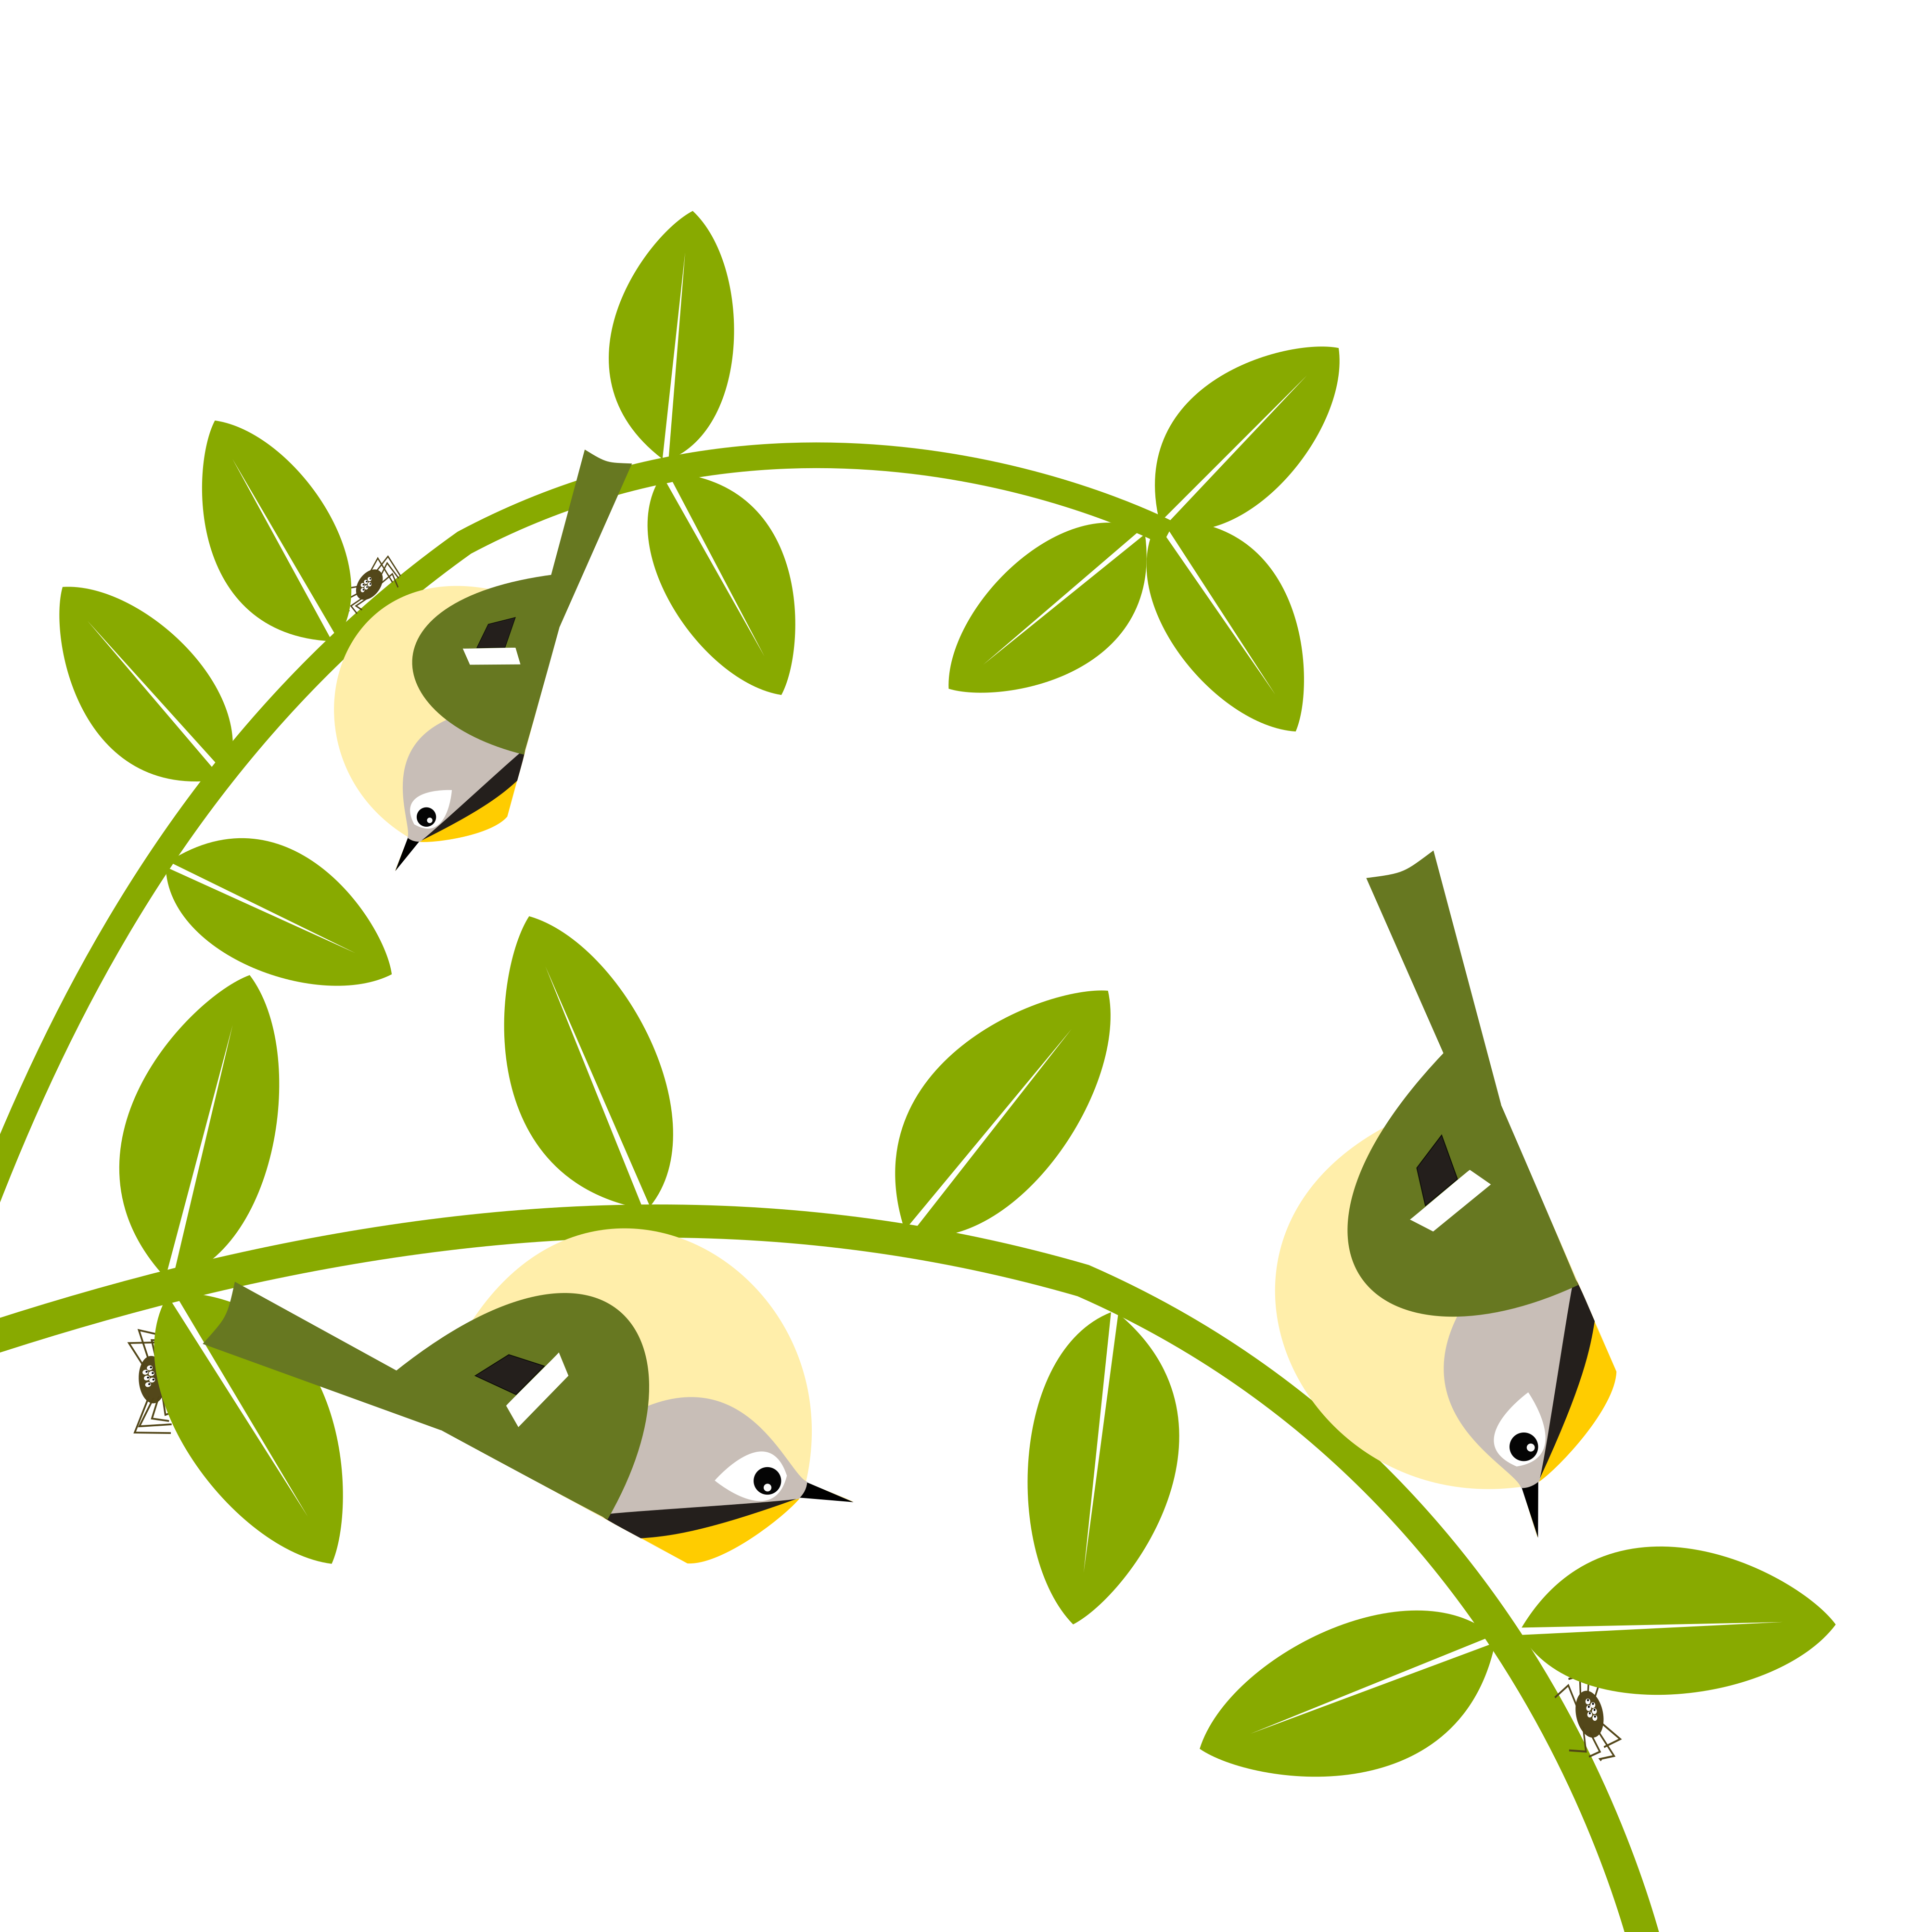 three goldcrests hunting for tiny spiders hiding behind leaves in a tree. Simply drawn with flat bold colours on a white background